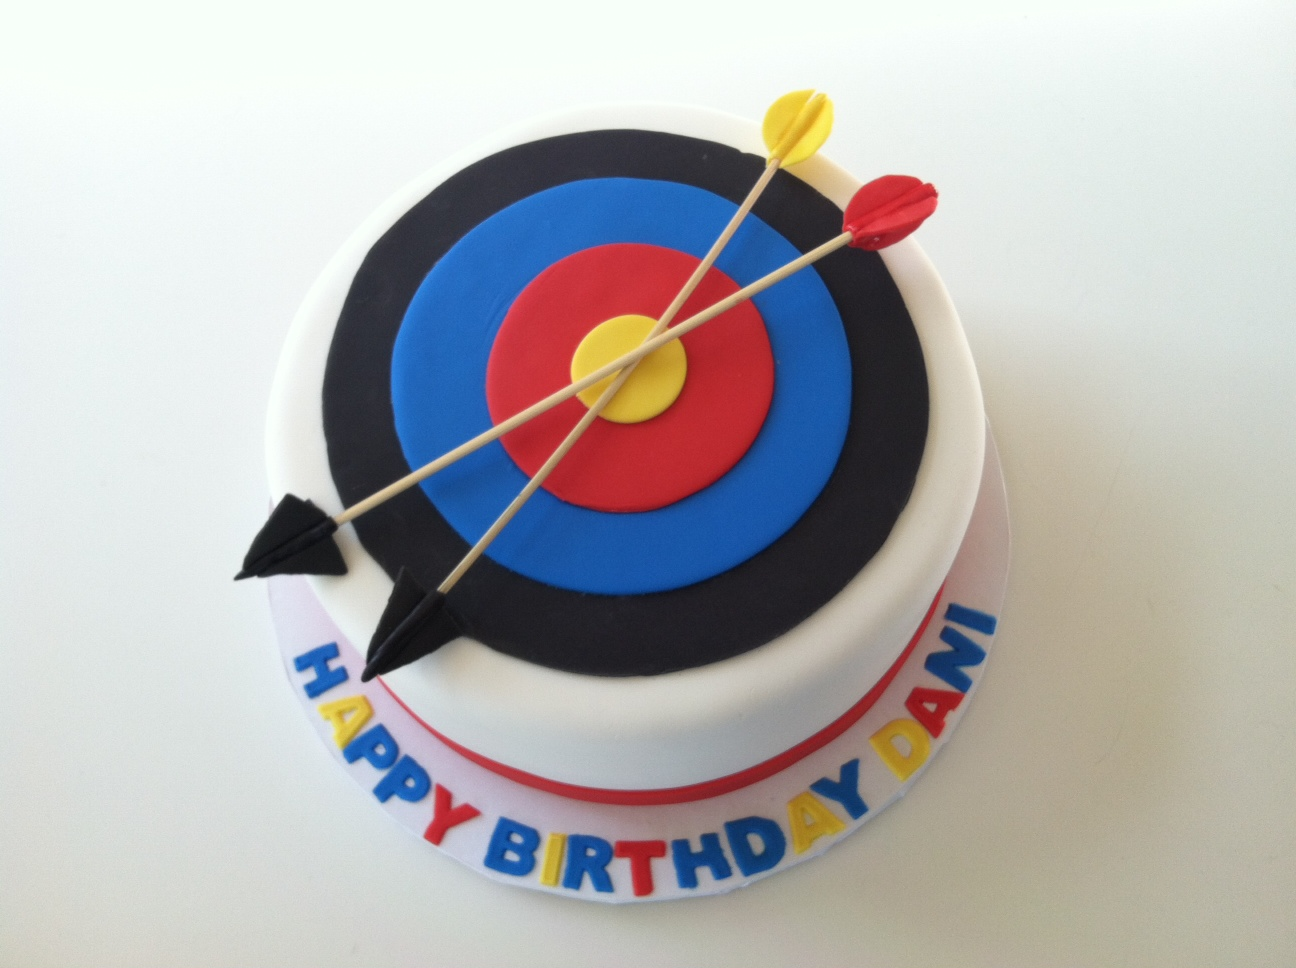 Pleasing Archery Target Cake With Images Archery Birthday Target Funny Birthday Cards Online Aboleapandamsfinfo